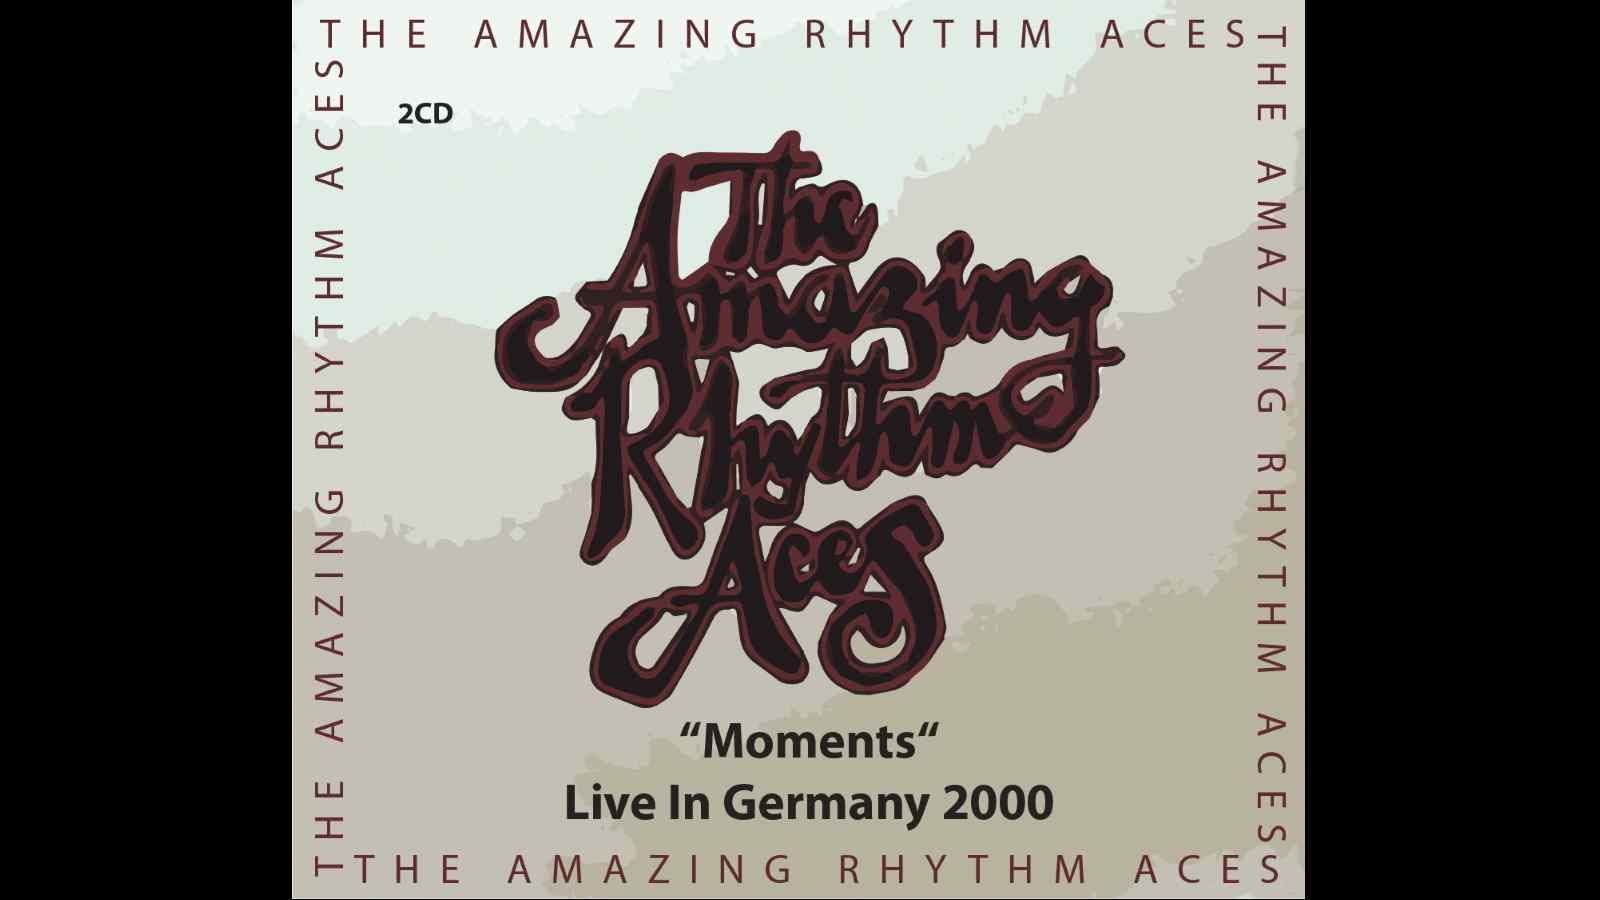 The Amazing Rhythm Aces Archival Concert Performance Released